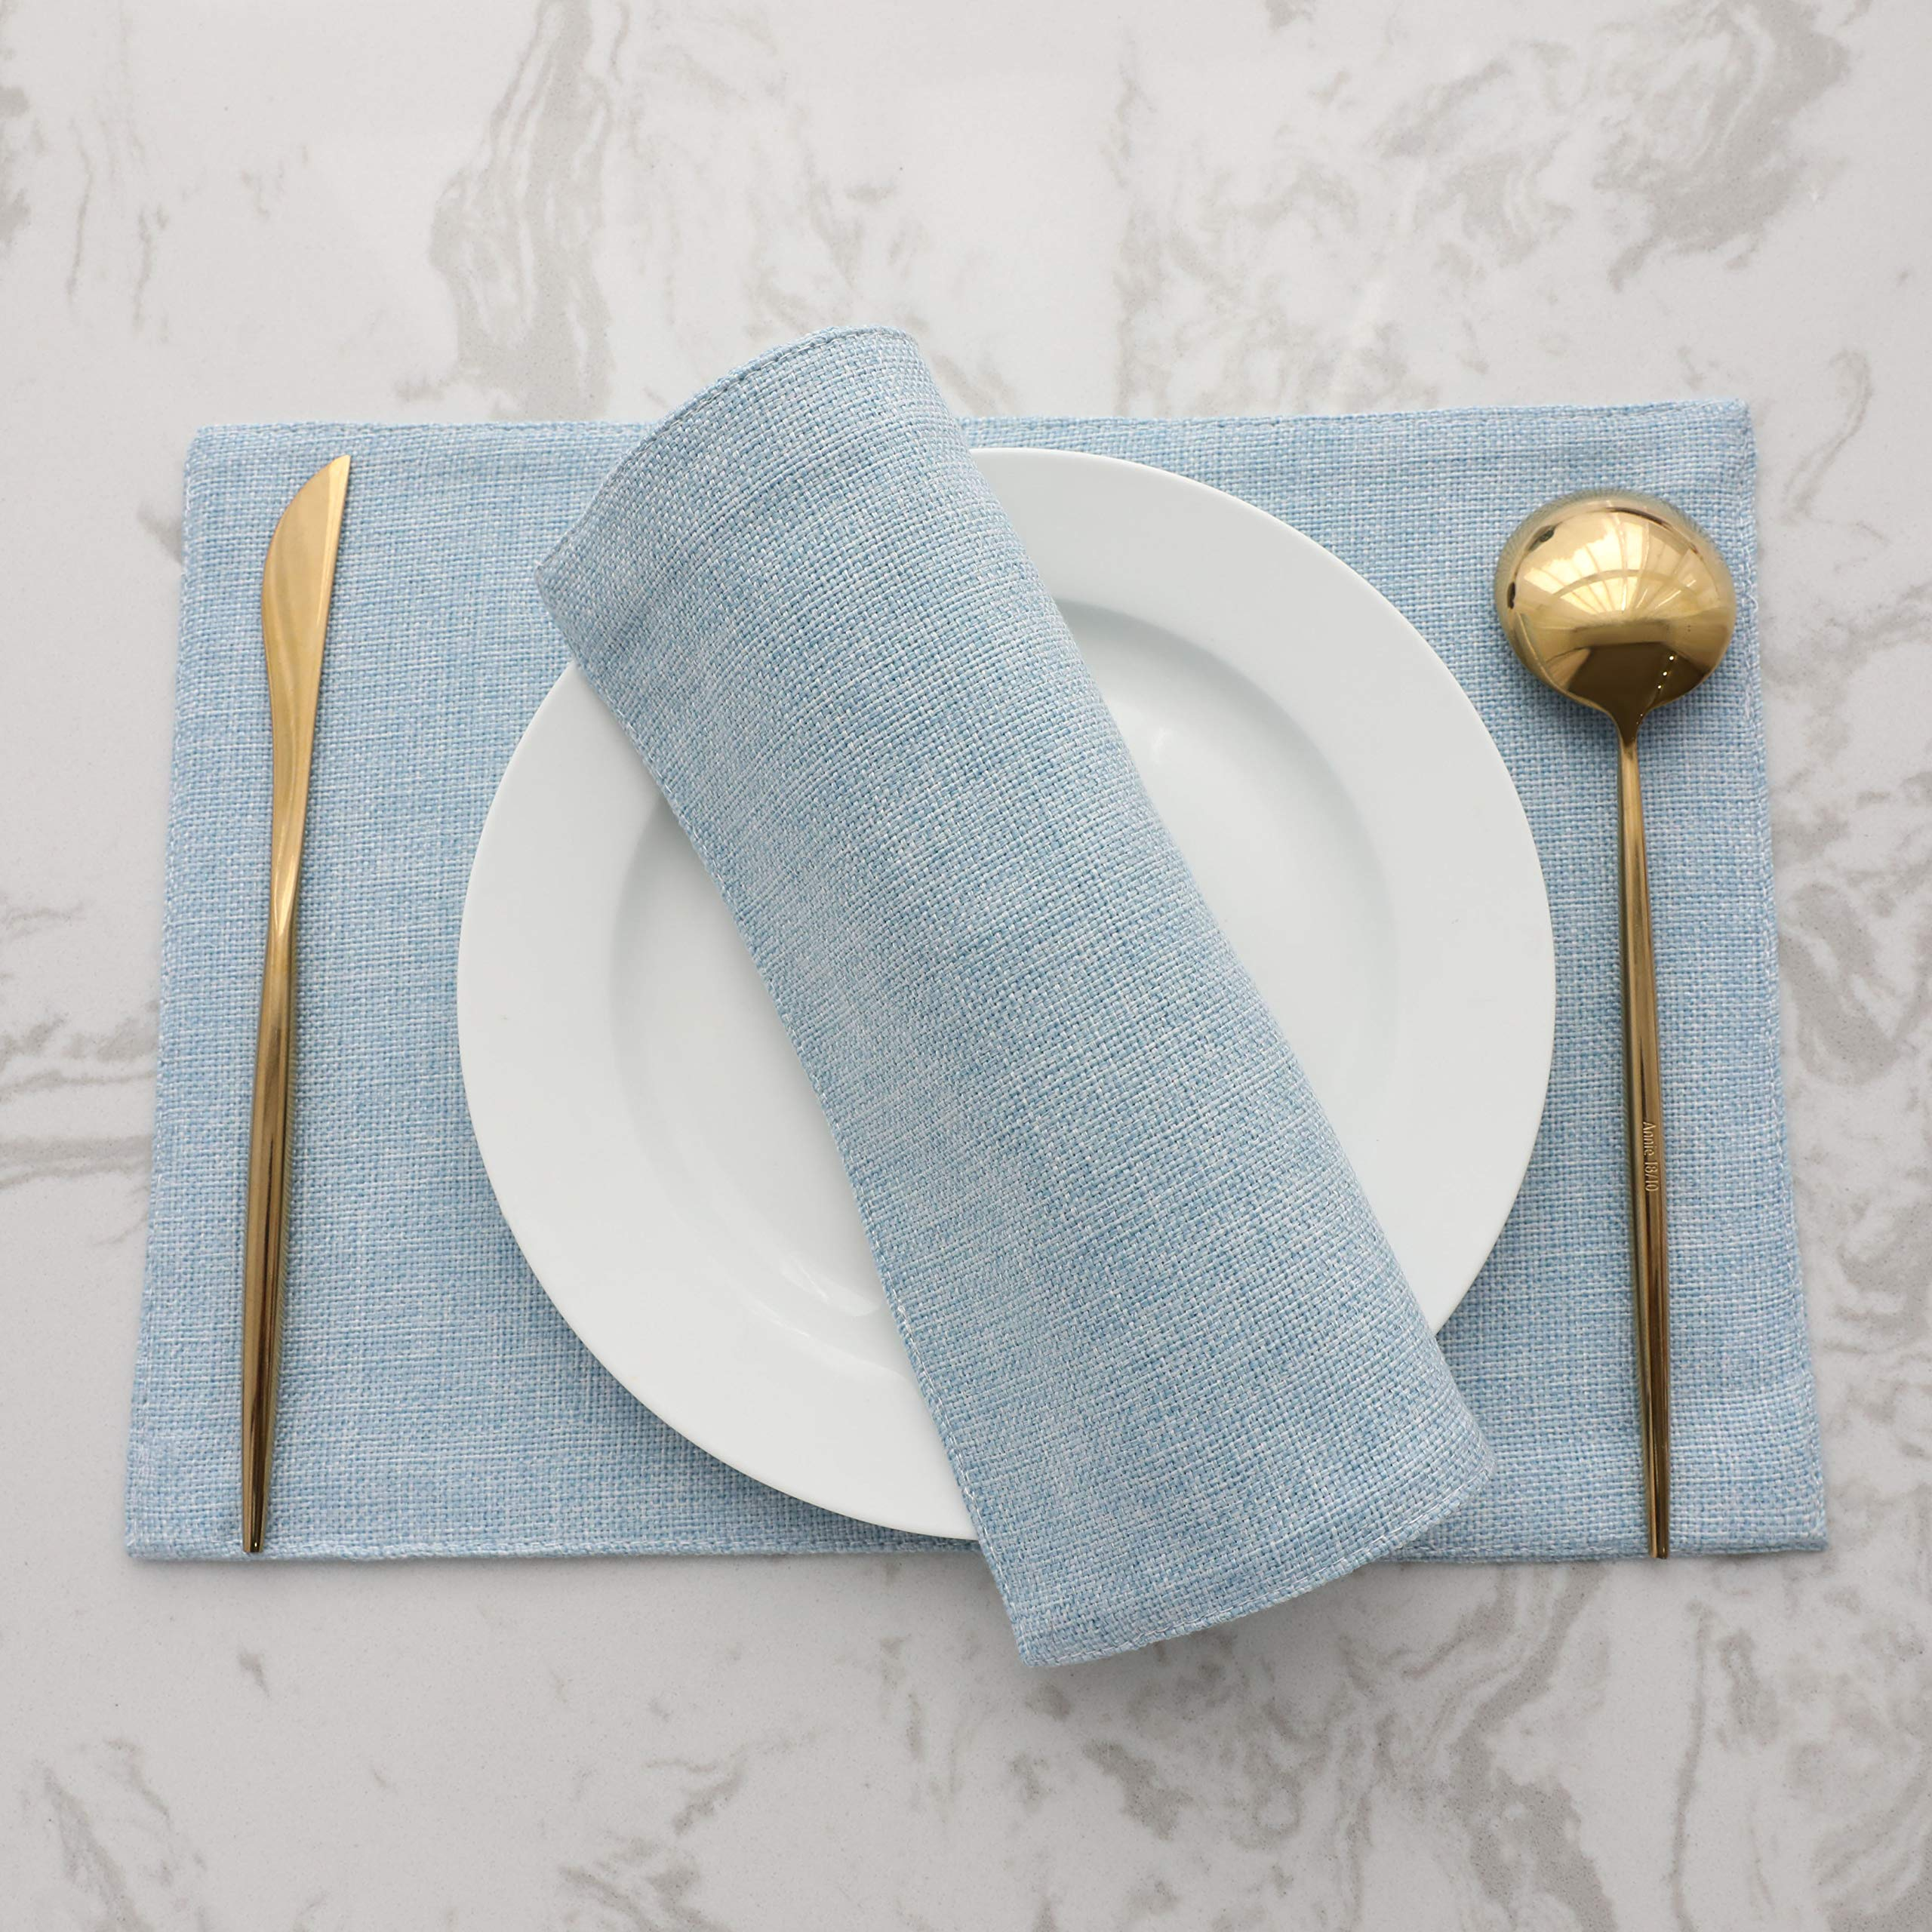 HOME BRILLIANT Placemats Set of 4 Heat Resistant Dining Table Place Mats Kitchen Table Mats, Blue